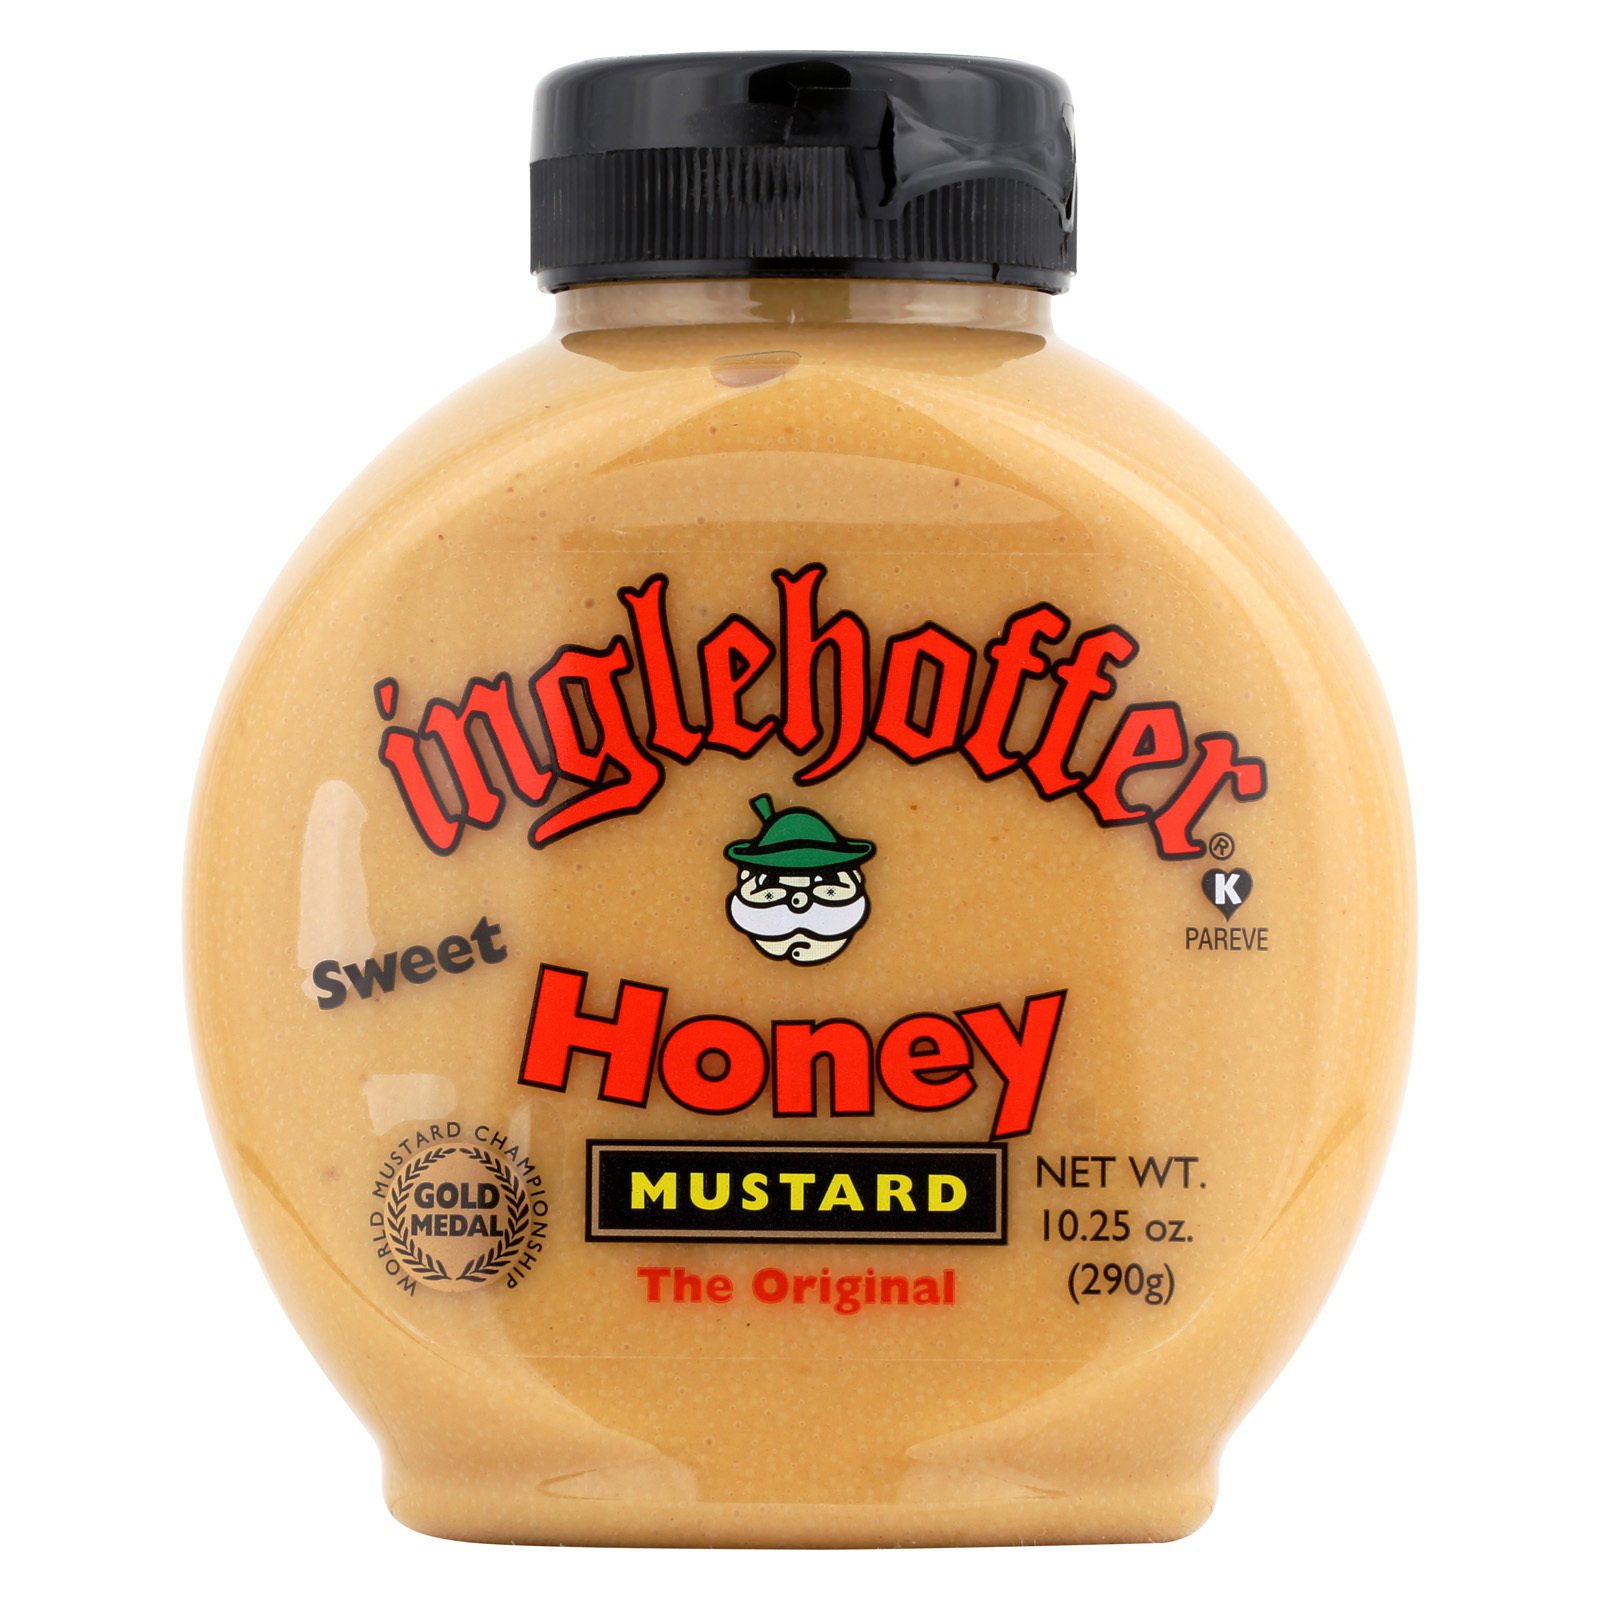 Inglehoffer Mustard - Honey - Case of 6 - 10.25 oz.